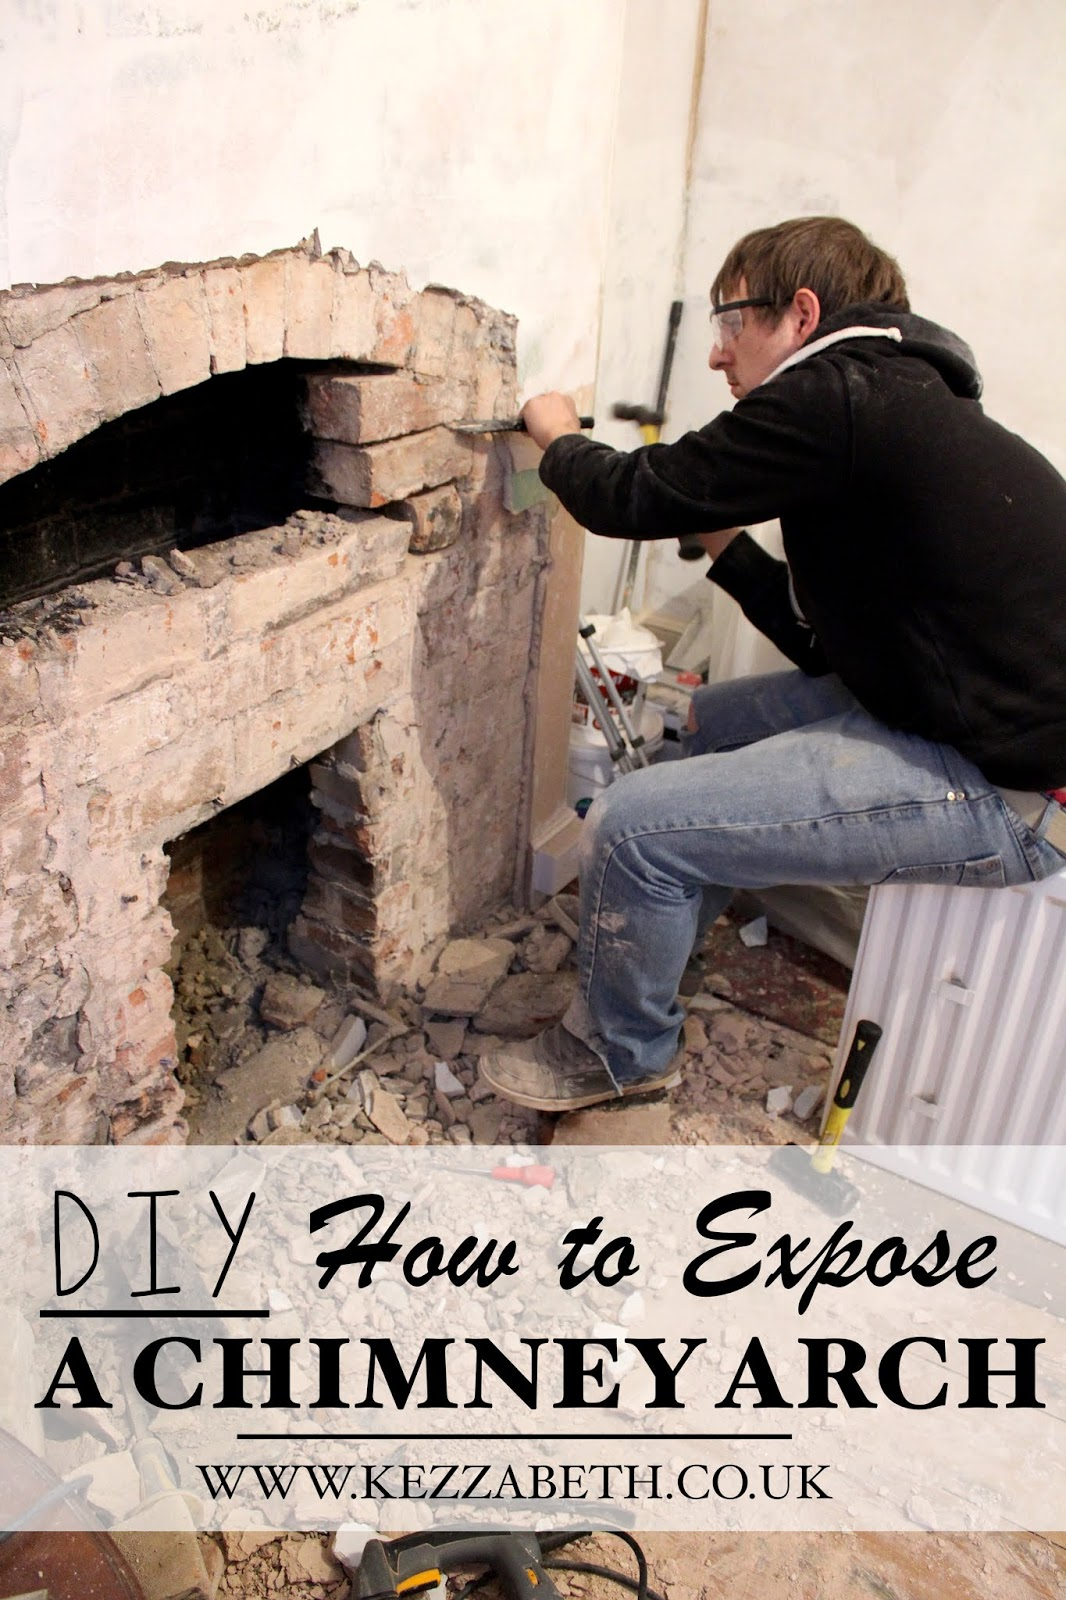 DIY how to expose a chimney arch